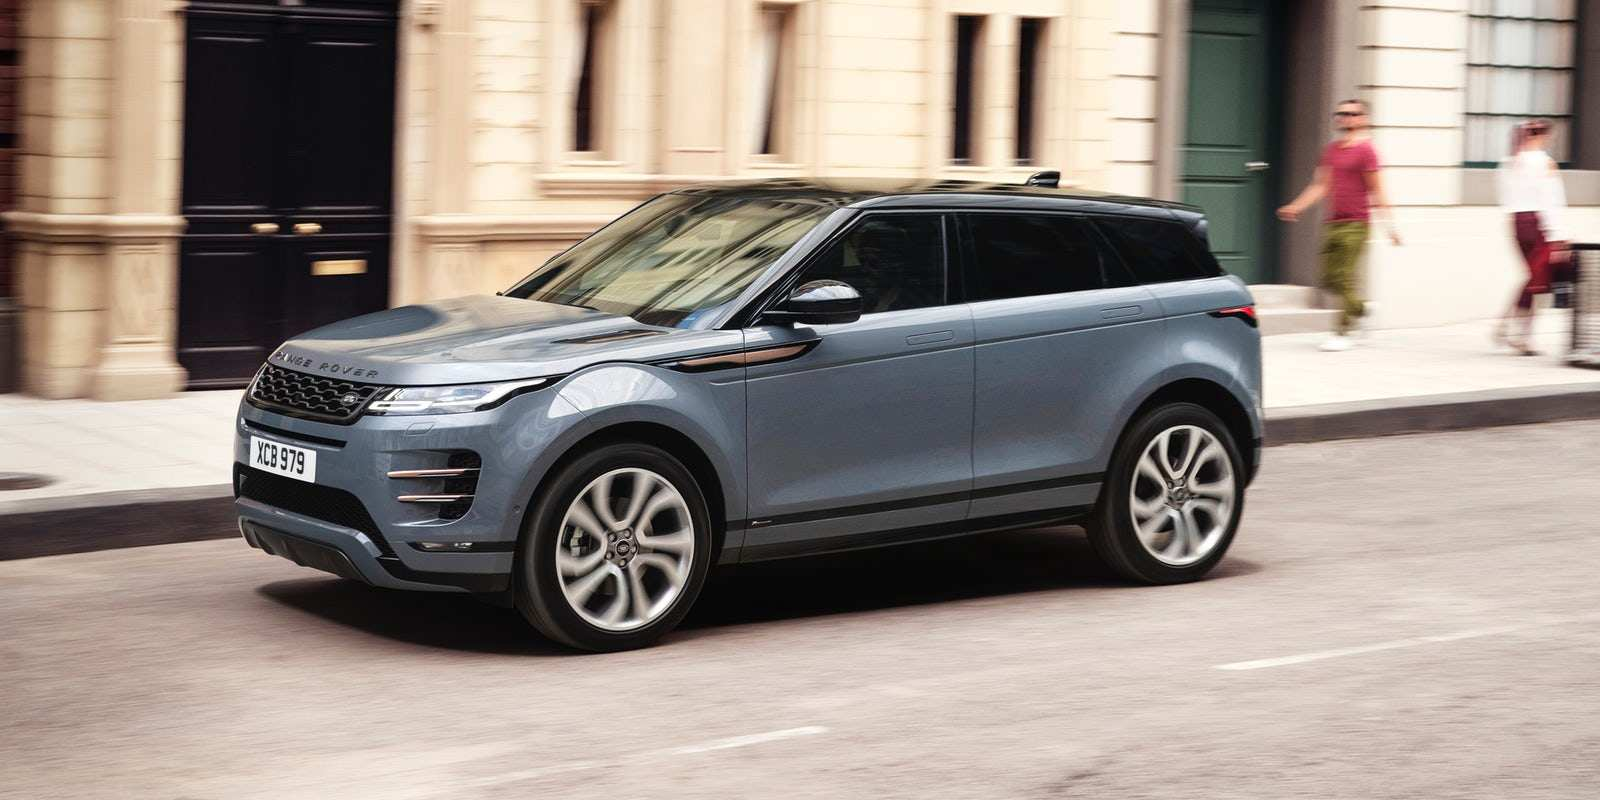 98 Great New Land Rover Evoque 2019 Images by New Land Rover Evoque 2019